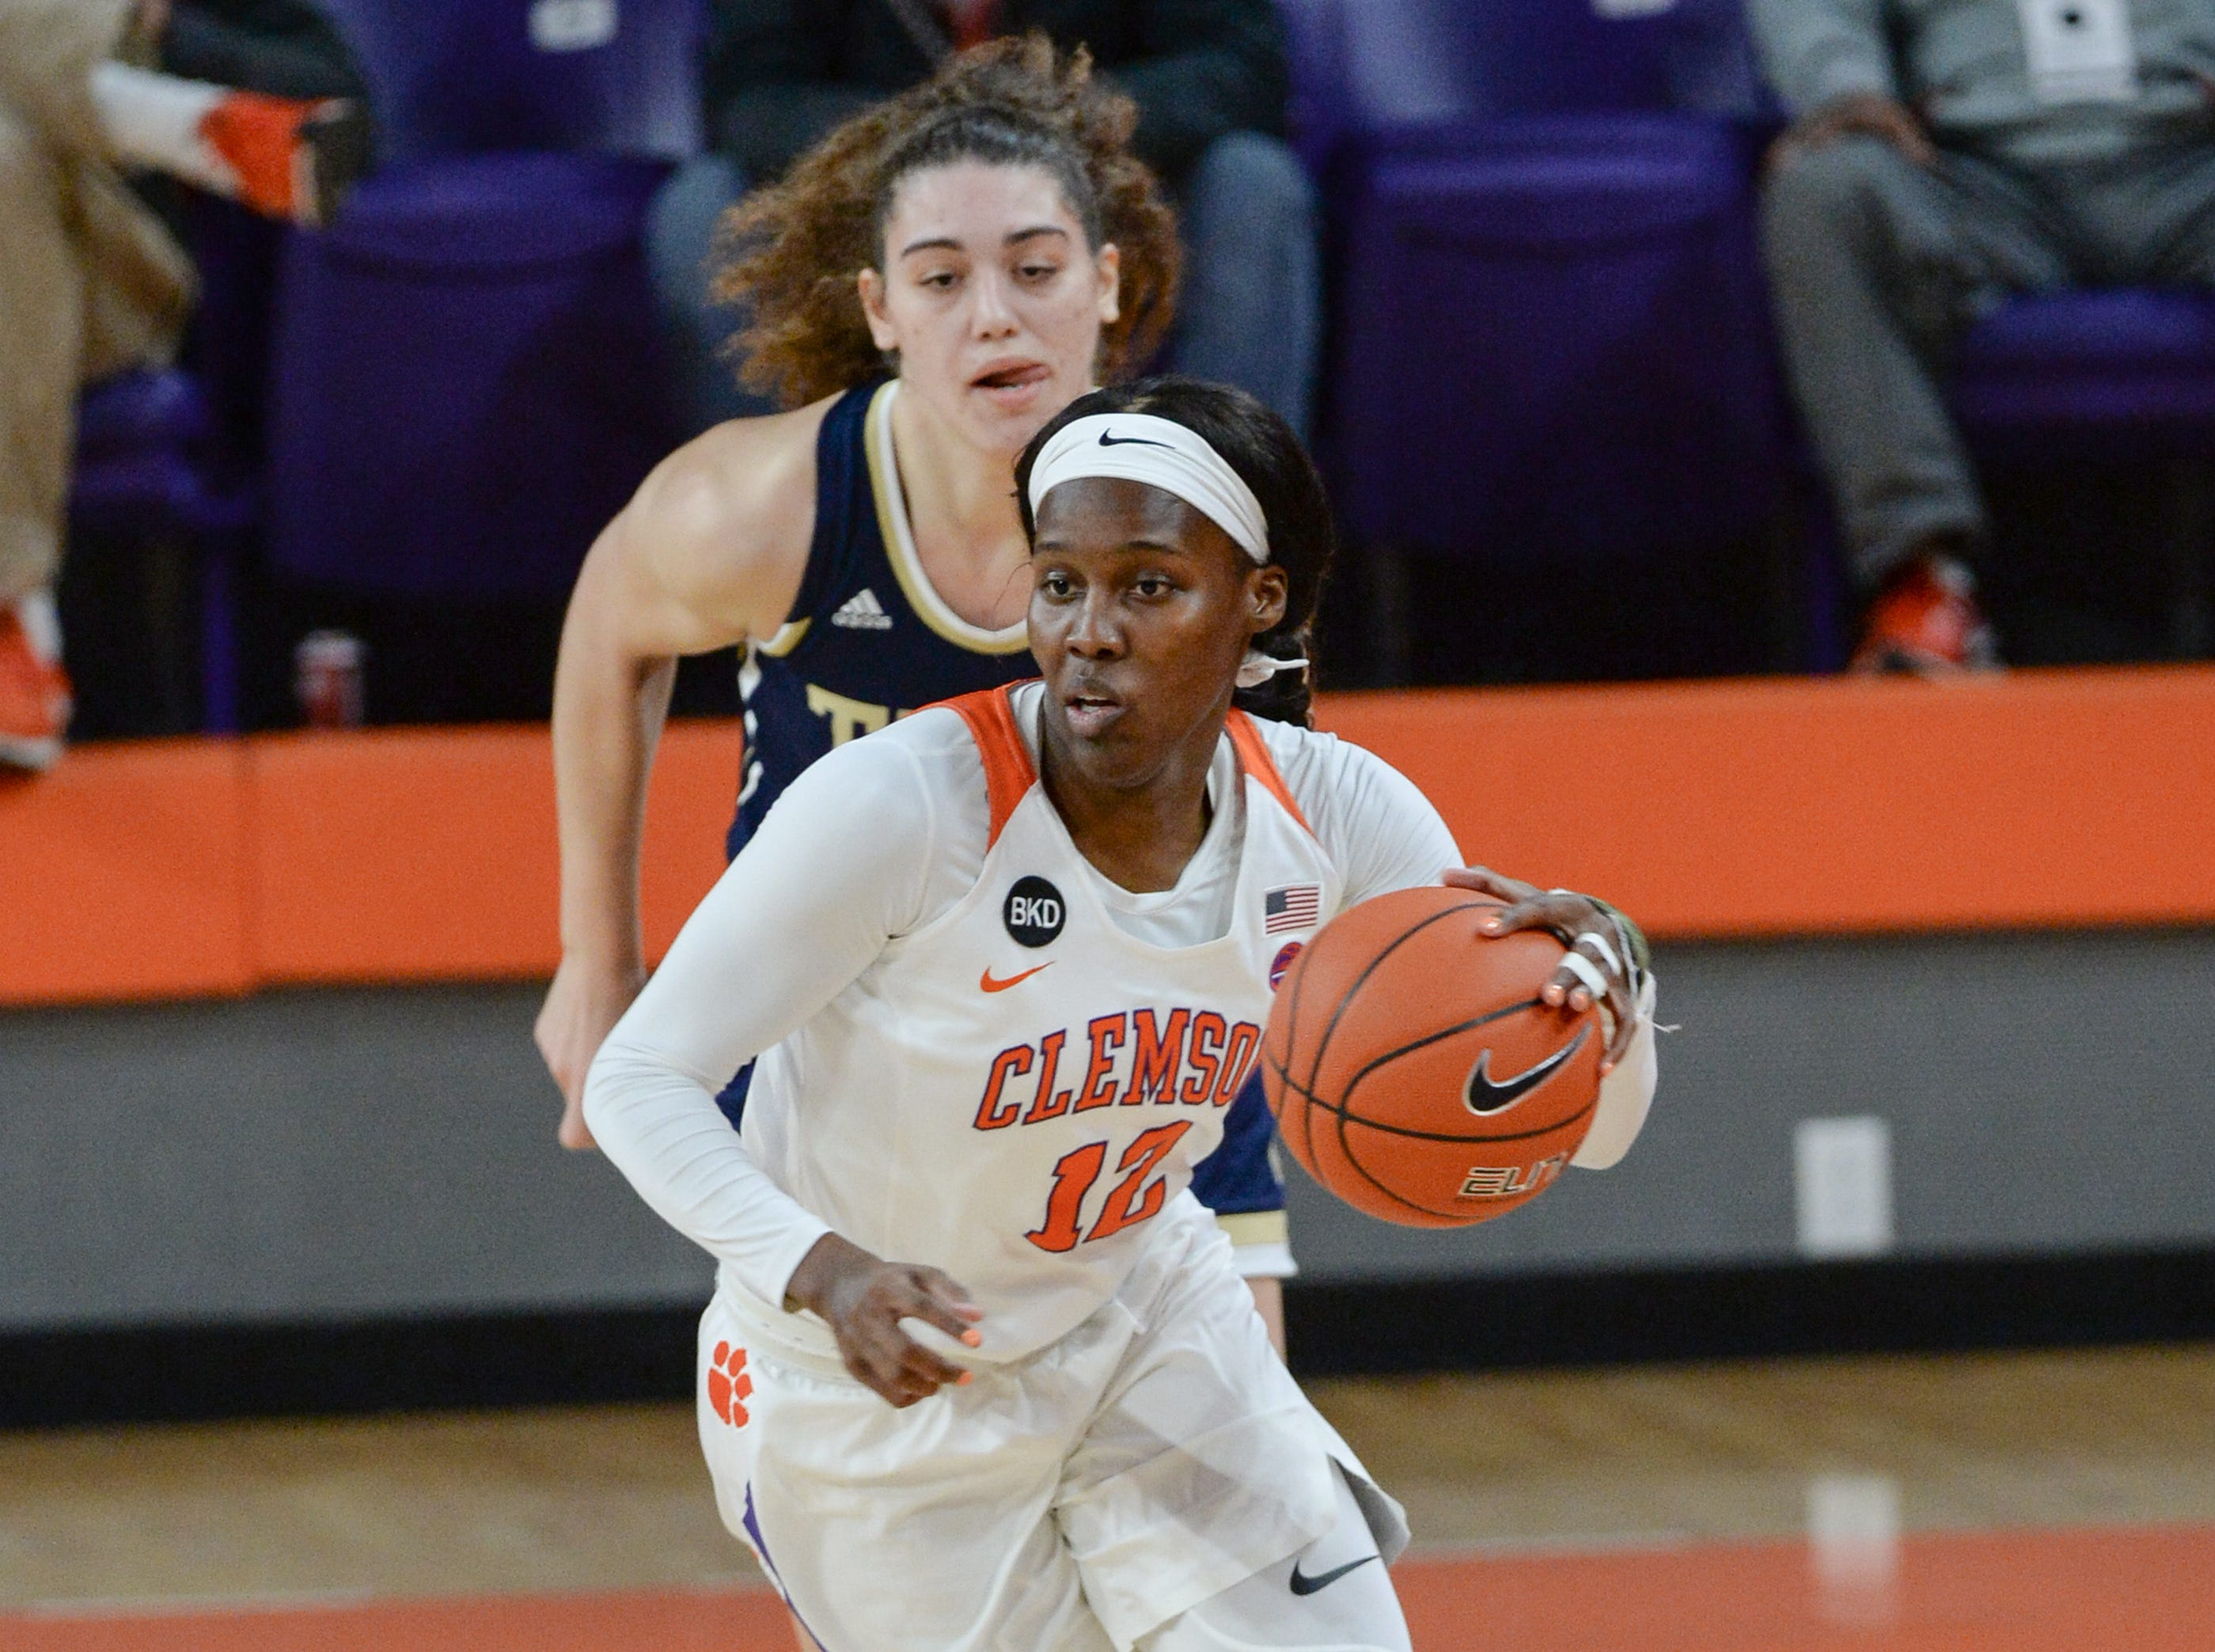 Clemson guard Aliyah Collier(12) dribbles up court during the second quarter of the game with Georgia Tech at Littlejohn Coliseum in Clemson Thursday, January 17, 2019.